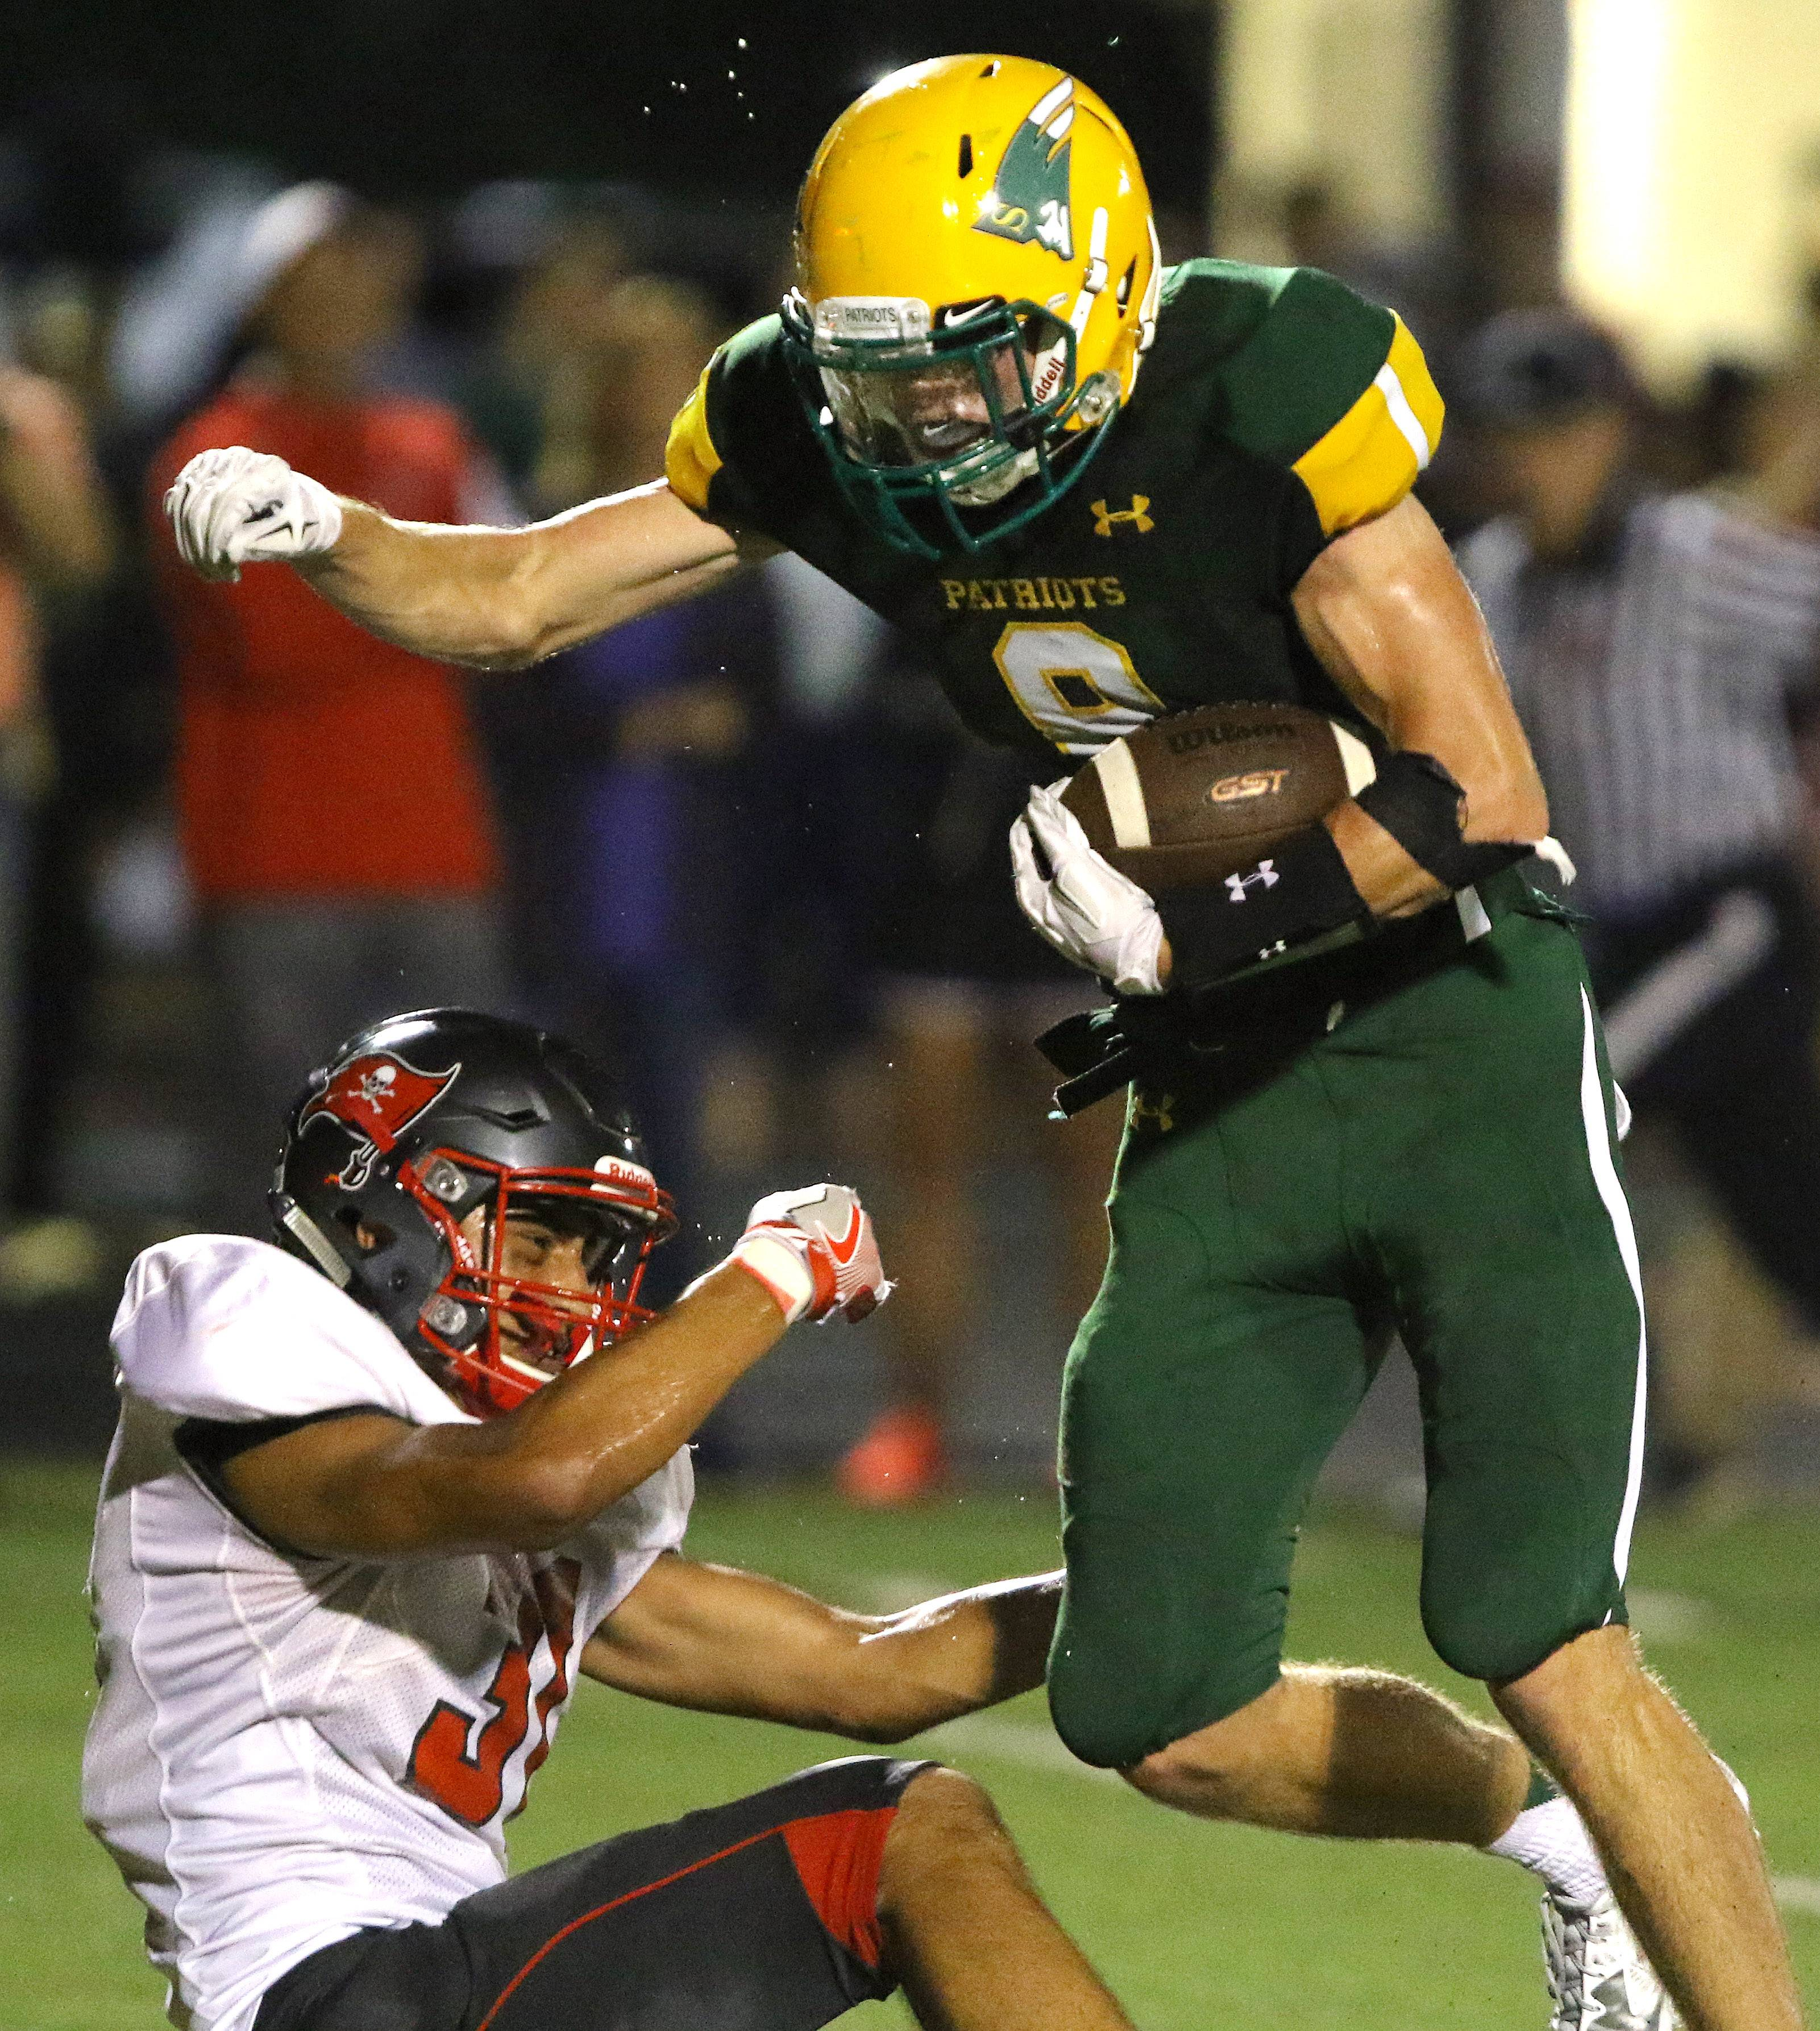 Stevenson's Michael Marchese, at right as Palatine's Dylan Tapia tries to make the tackle, has a football future awaiting him at Illinois.